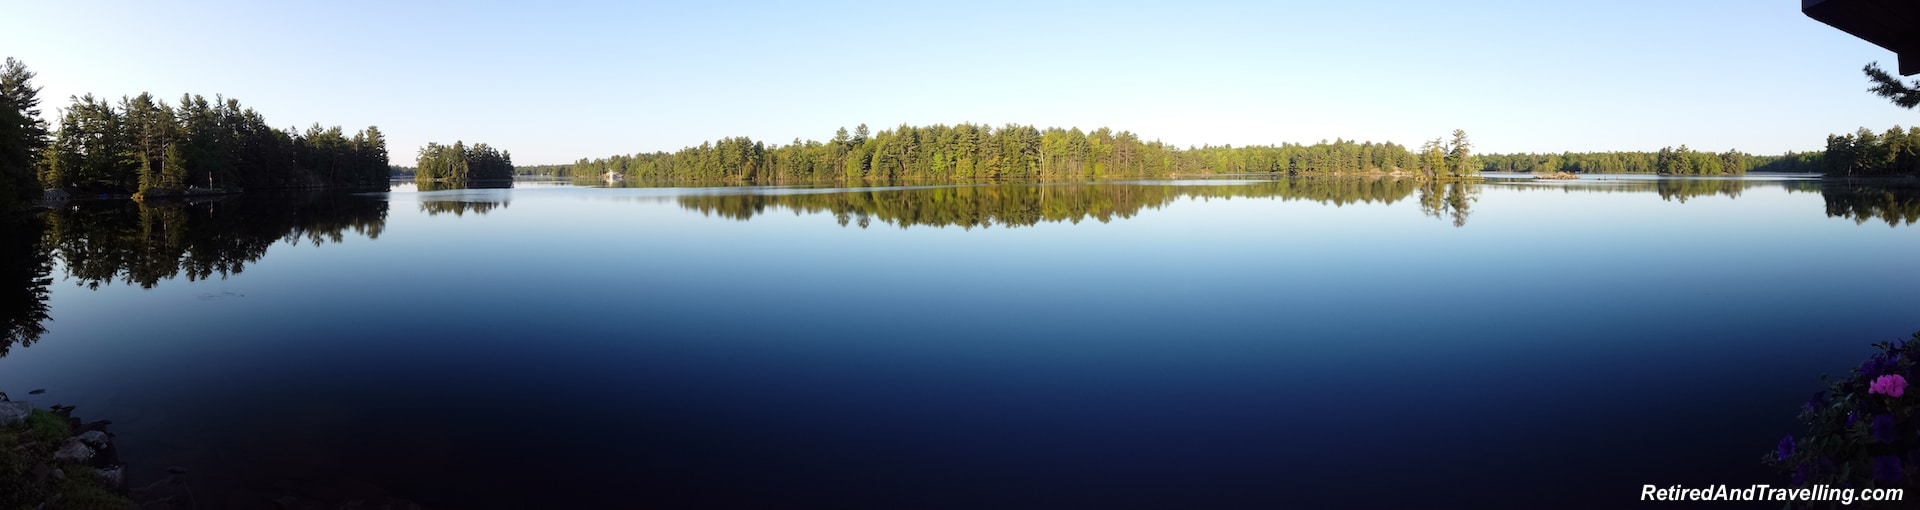 Calm Lake - Toronto Cottage Country.jpg